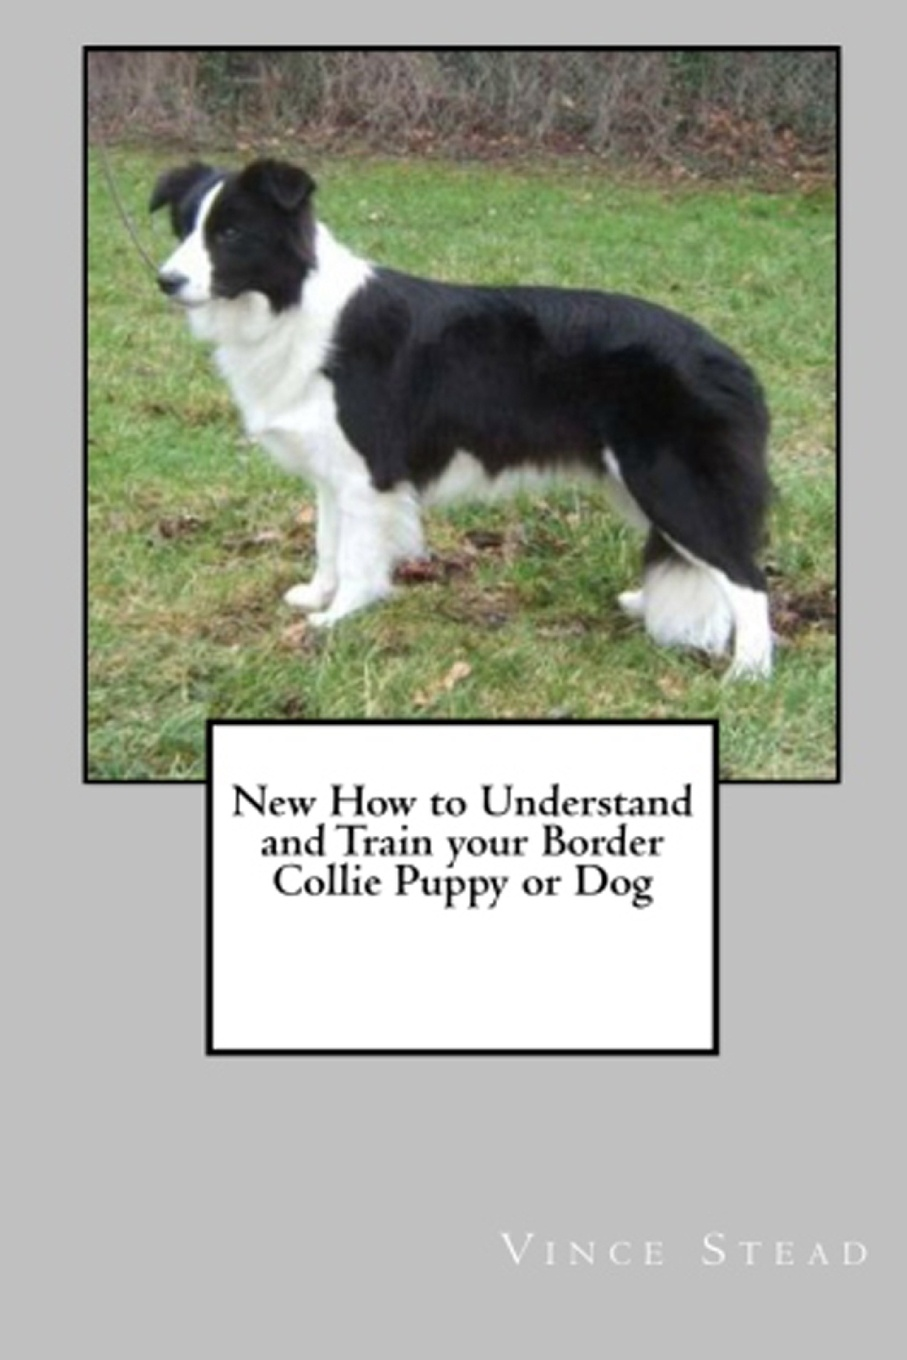 Vince Stead New How to Understand and Train Your Border Collie Puppy or Dog vince stead how to understand and train your golden retriever puppy or dog